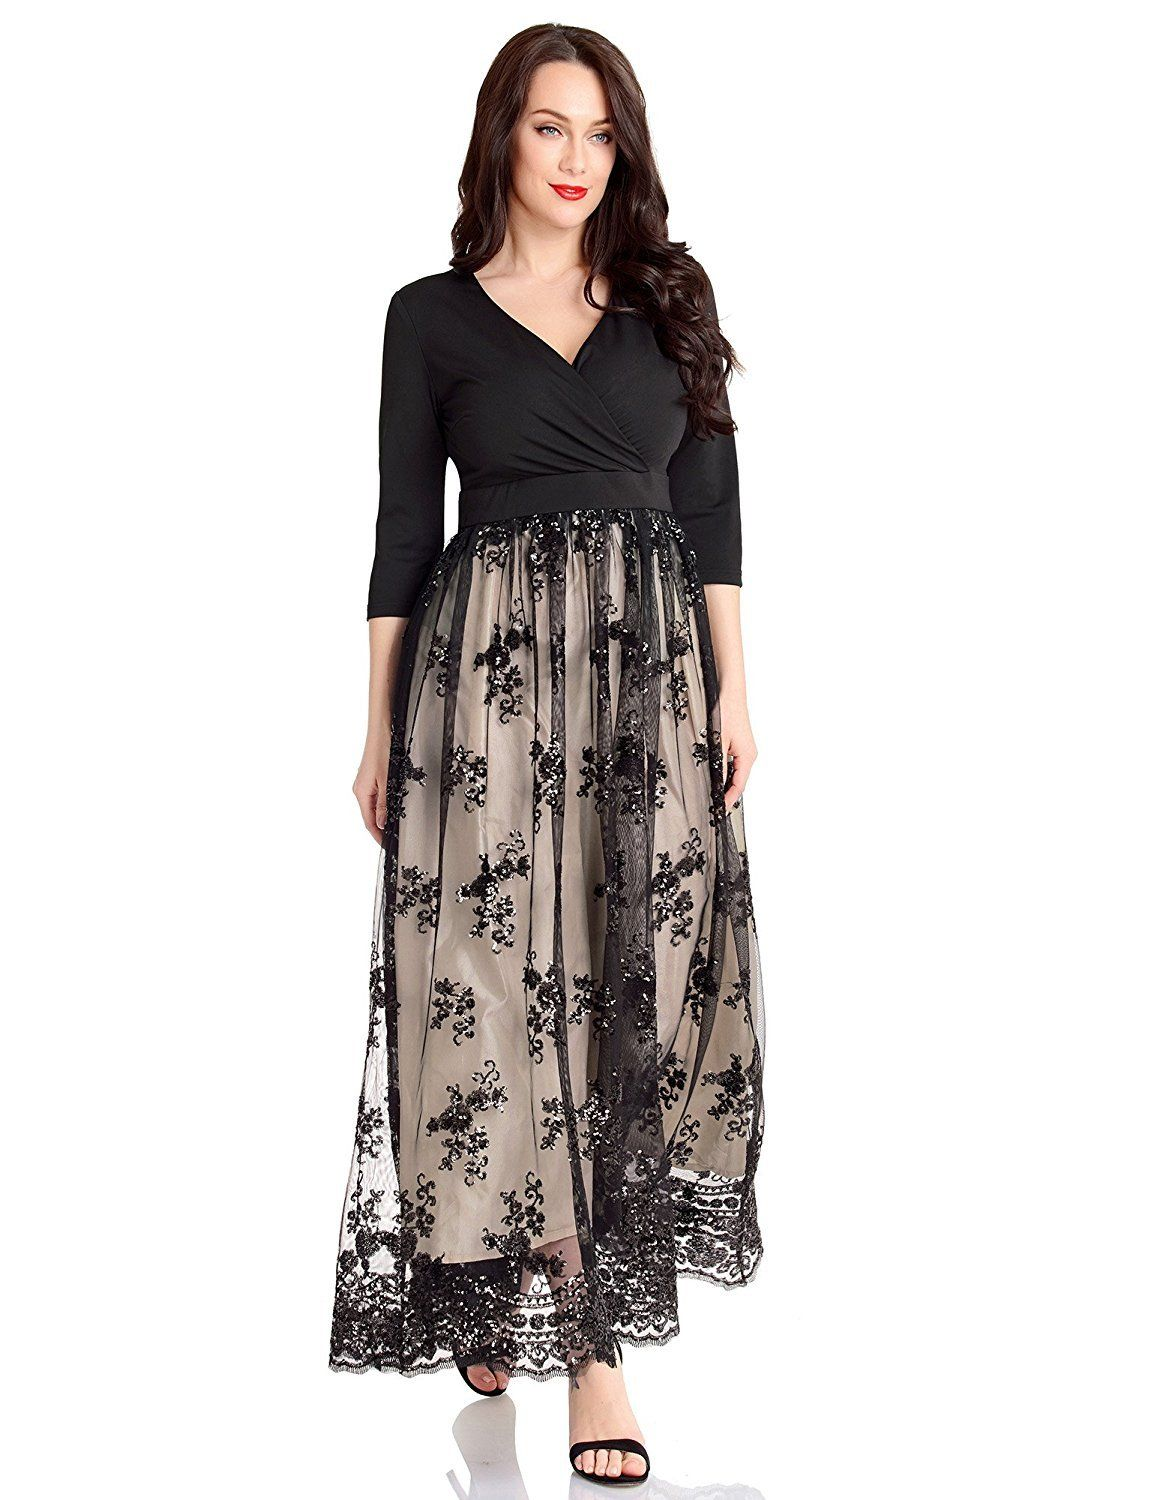 1d766afef94 This elegant long dress features a 3 4 sleeve v-neckline. High waist